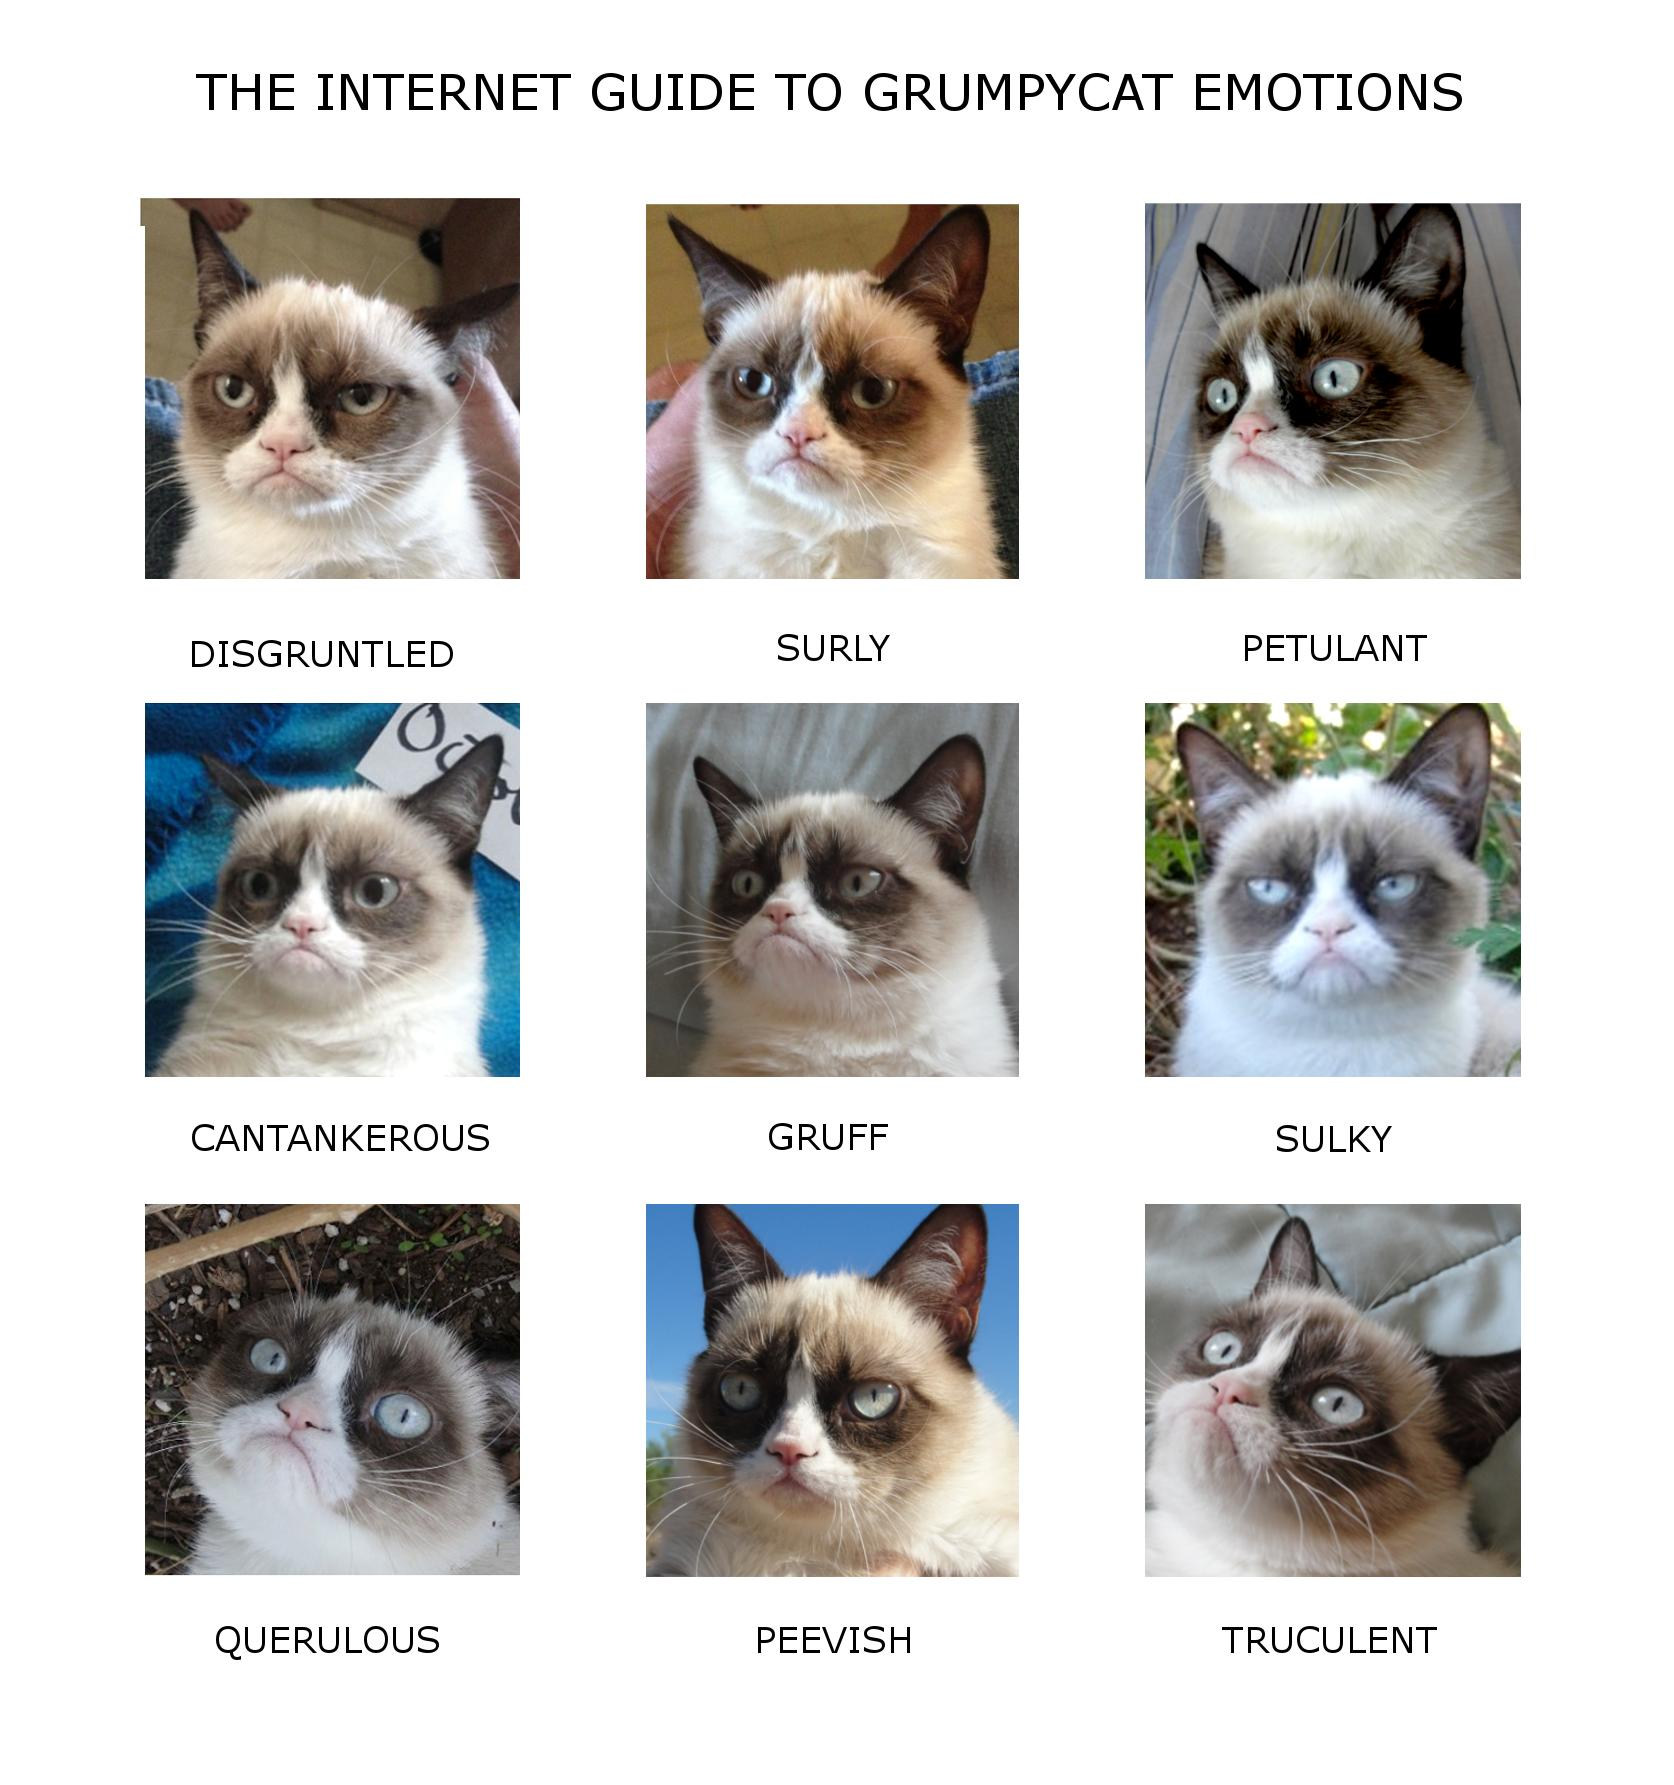 Image GrumpyCatEmotionChartjpg Original Stories Wiki - 17 cats that are angry grumpy and fed up with everything